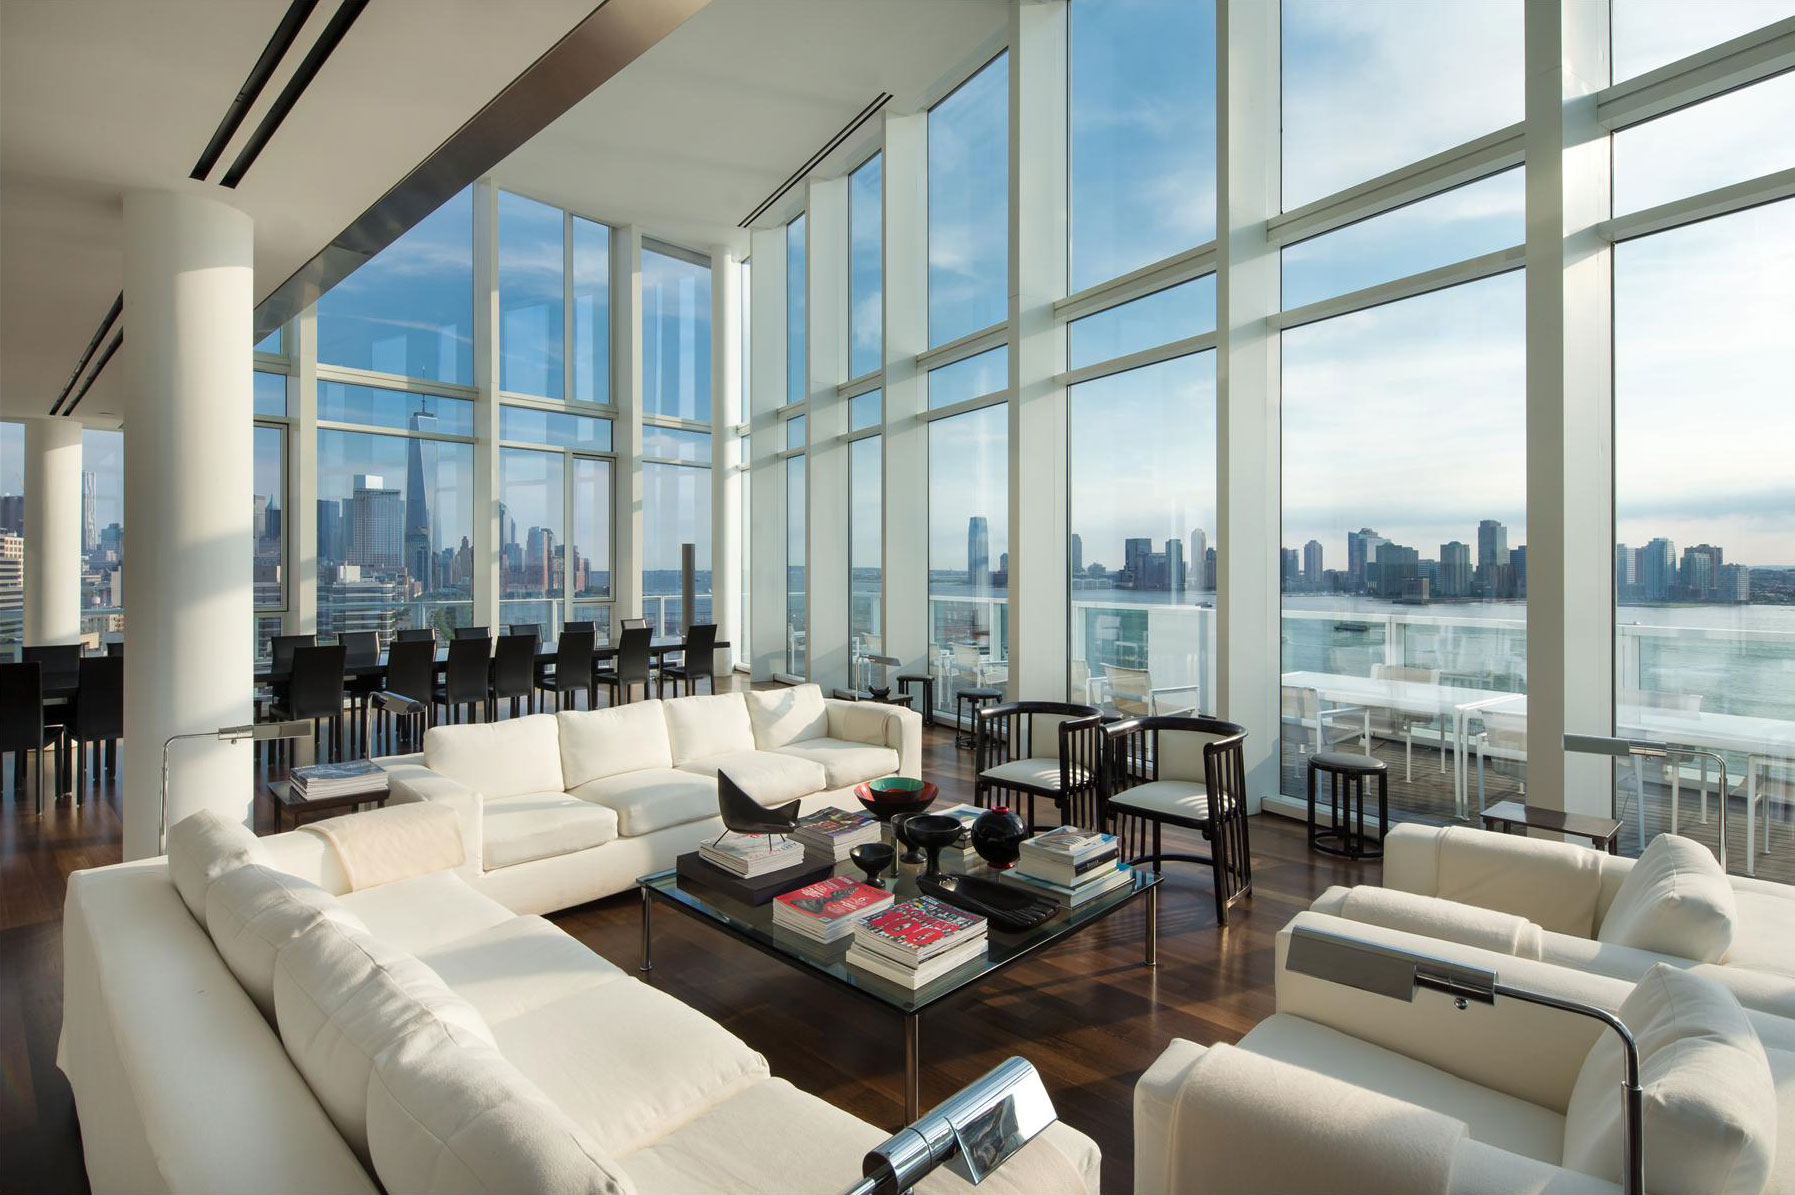 Dark Wood Flooring, Sofas, Floor-to-Ceiling Windows, City & River Views, Apartment in Manhattan